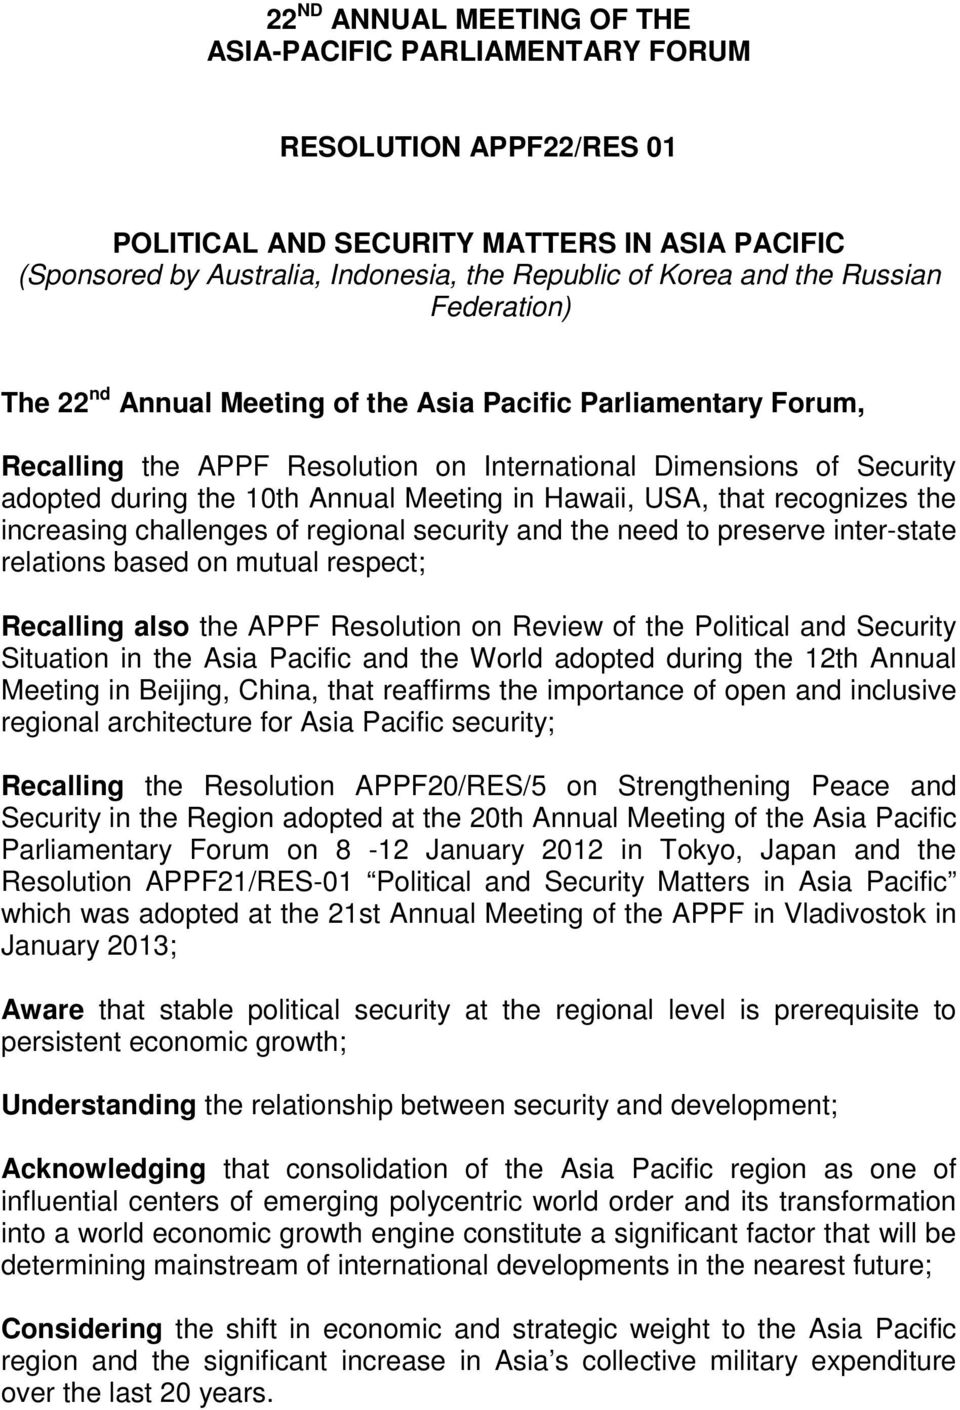 Hawaii, USA, that recognizes the increasing challenges of regional security and the need to preserve inter-state relations based on mutual respect; Recalling also the APPF Resolution on Review of the